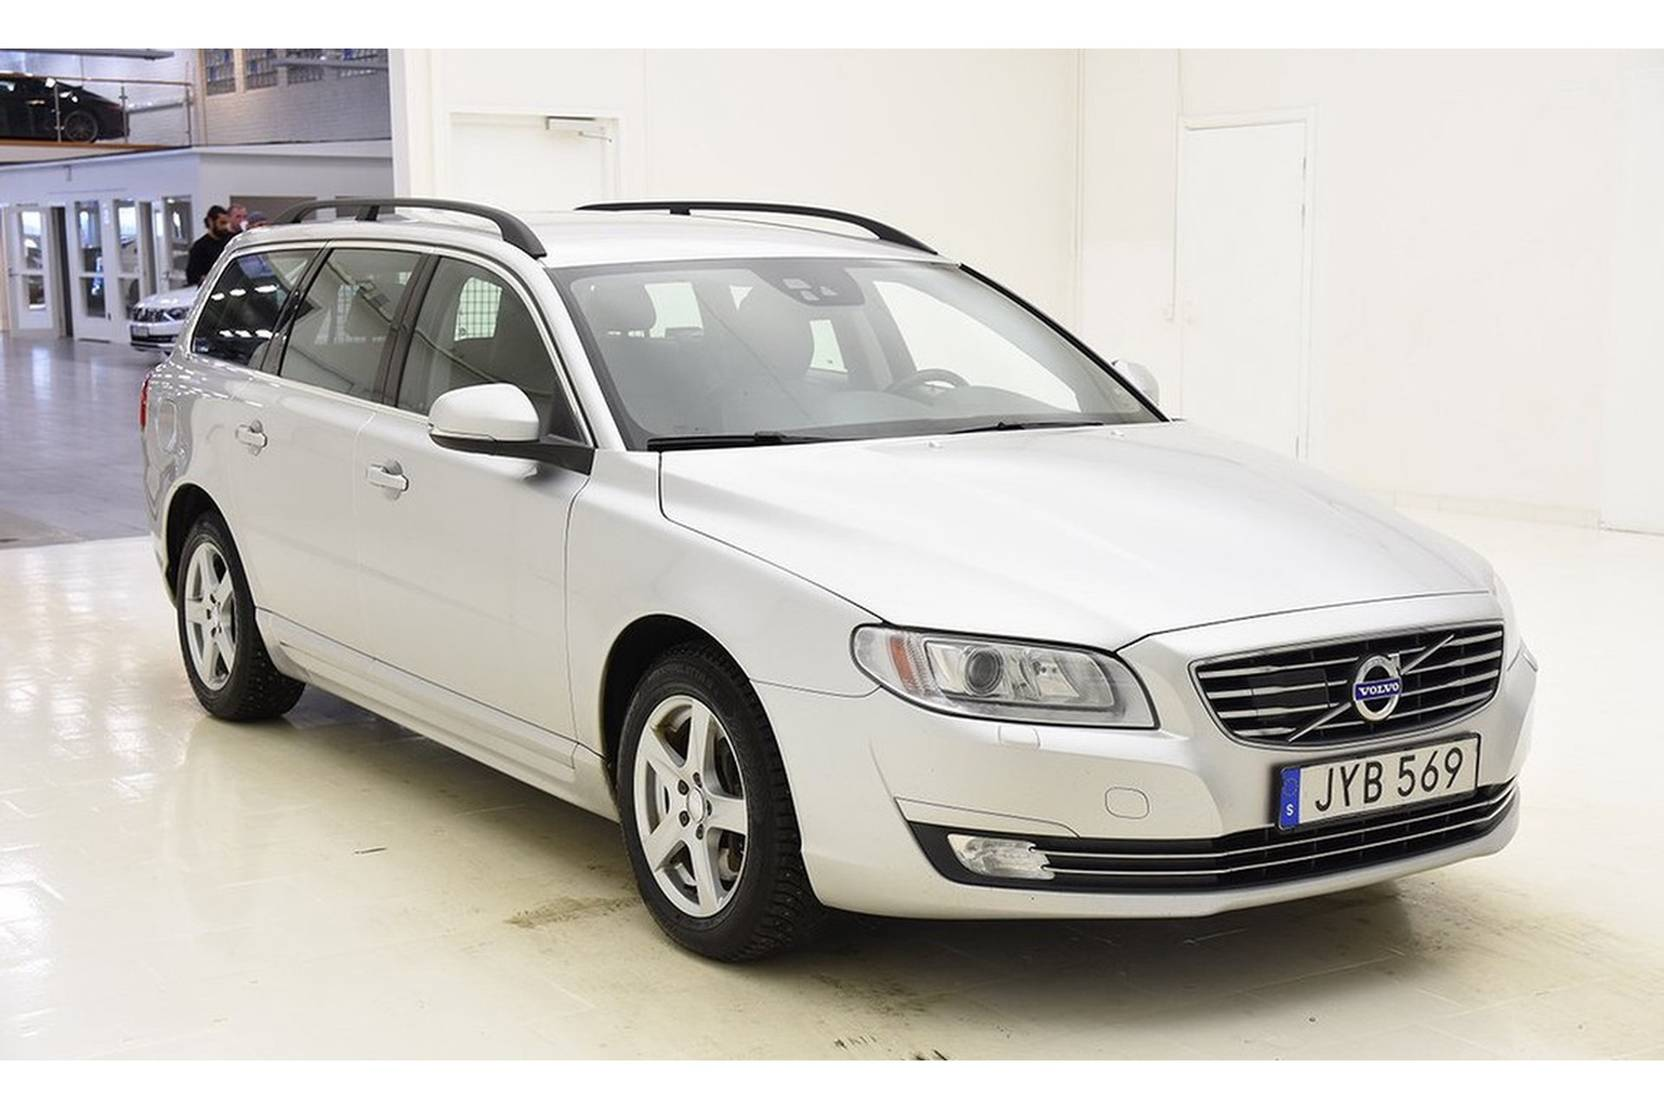 Volvo V70 D4 AWD Geartronic, Kinetic detail1